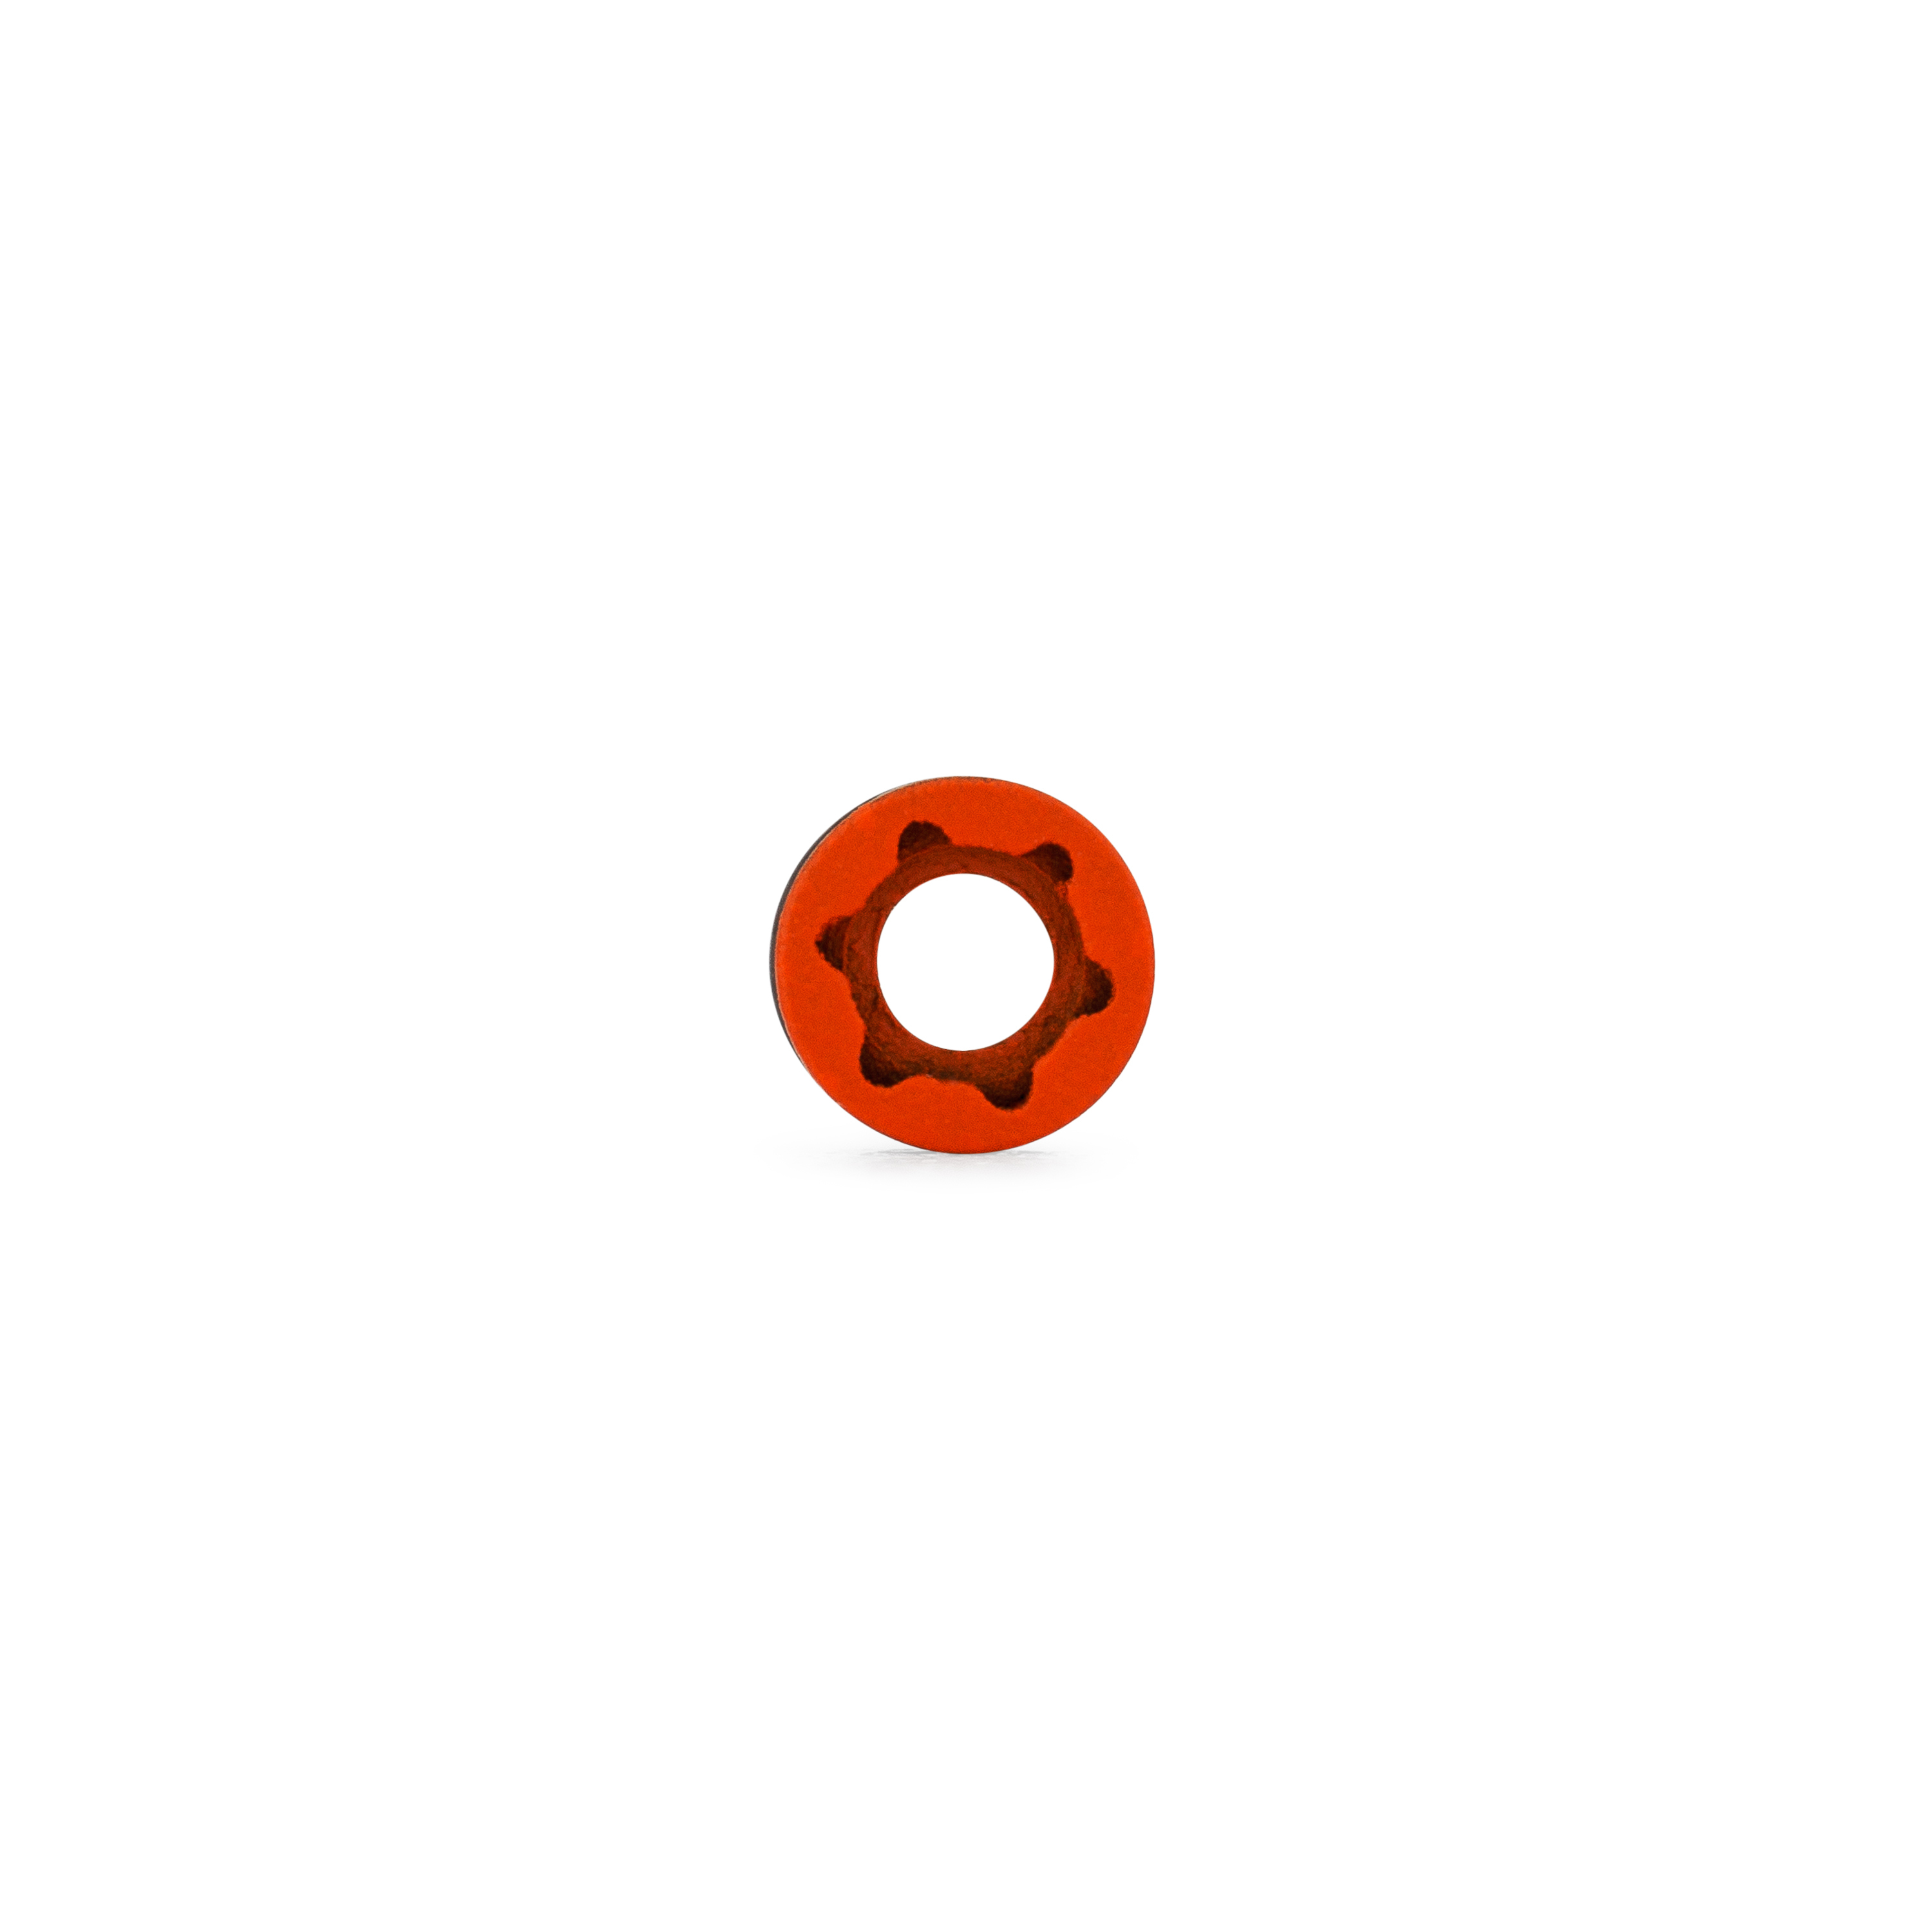 Trijicon DI™ Night Sight Retainer Replacement Pack - Orange